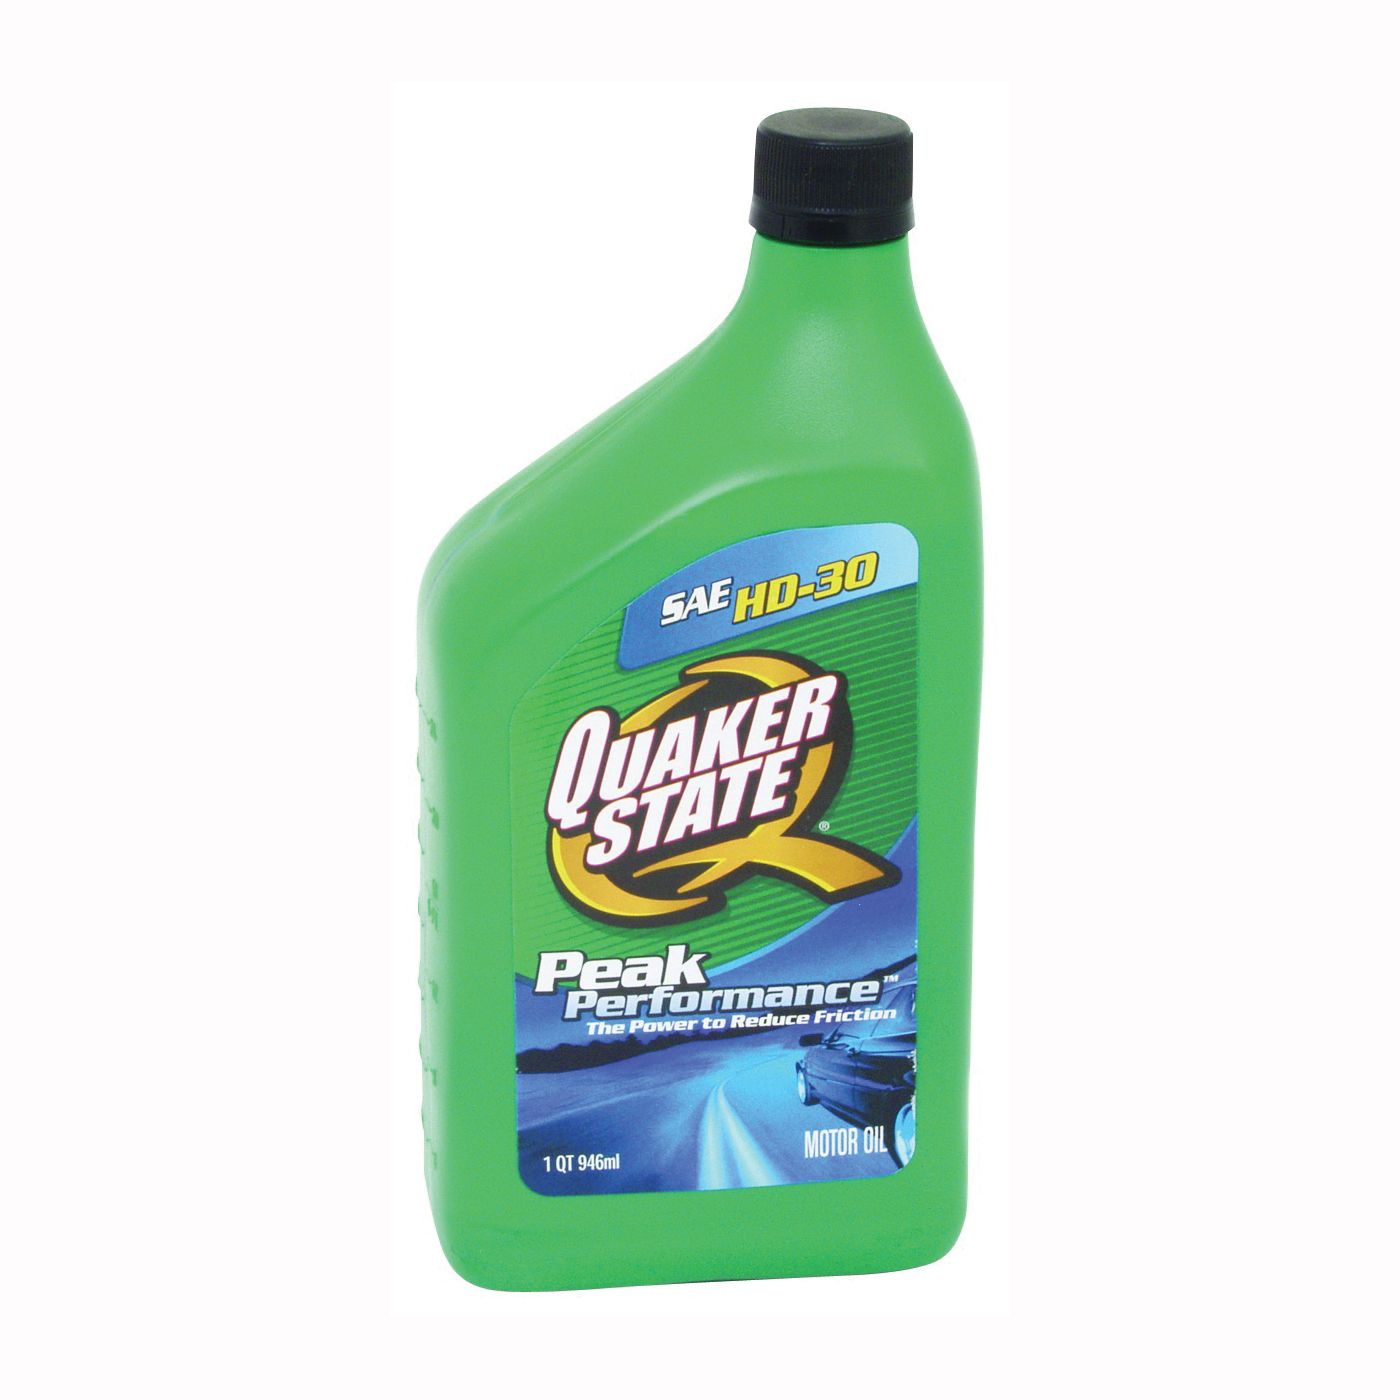 Picture of Quaker State 550035190/5500241 Motor Oil, 30, 1 qt Package, Bottle